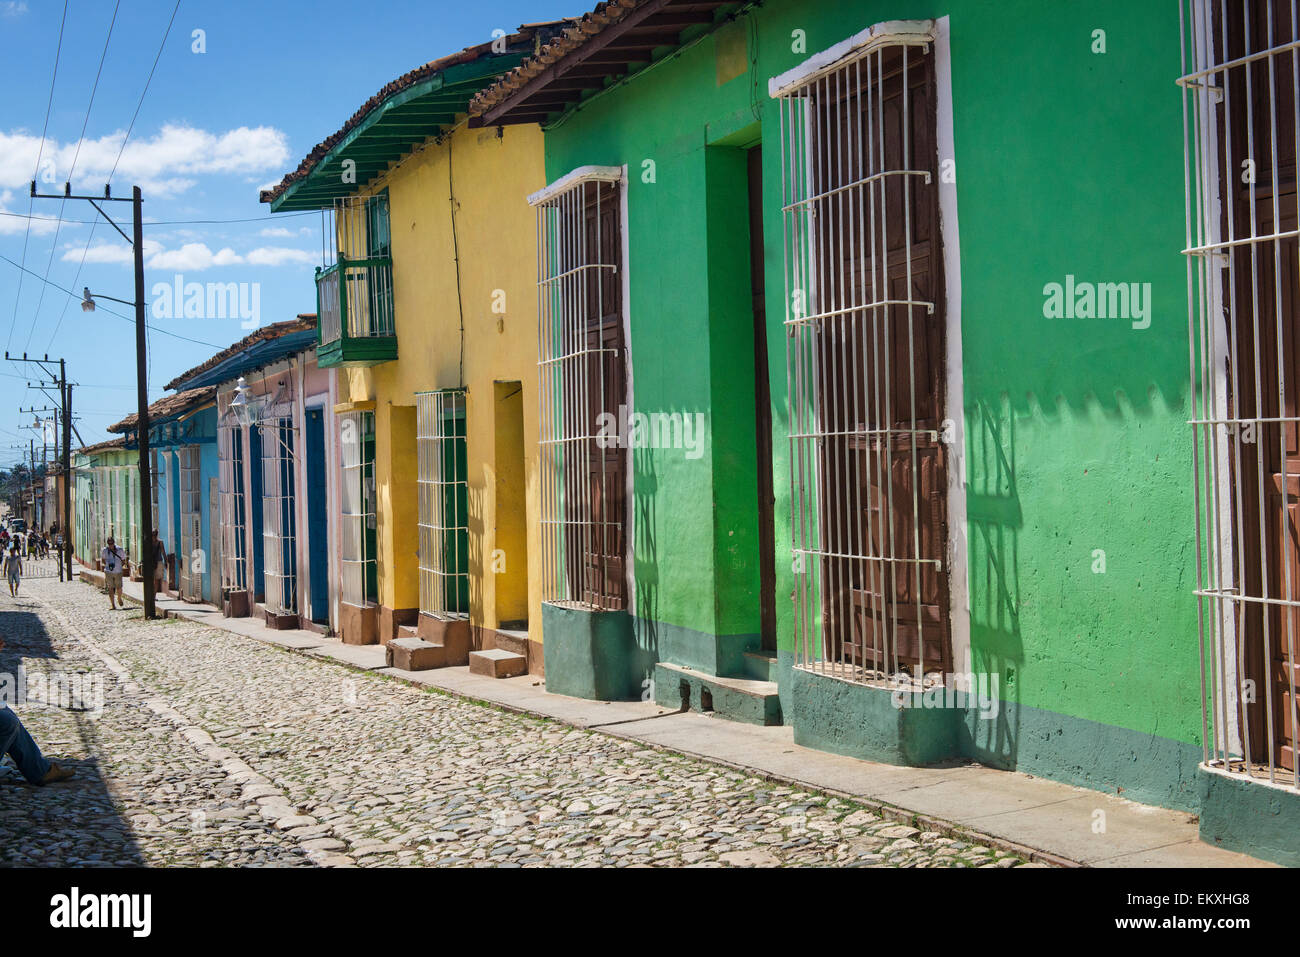 Cuba Trinidad Typical Old Town City Cobble Cobbled Street Road Scene Wooden  Shutters Metal Bars Houses Homes Colouful Coloful